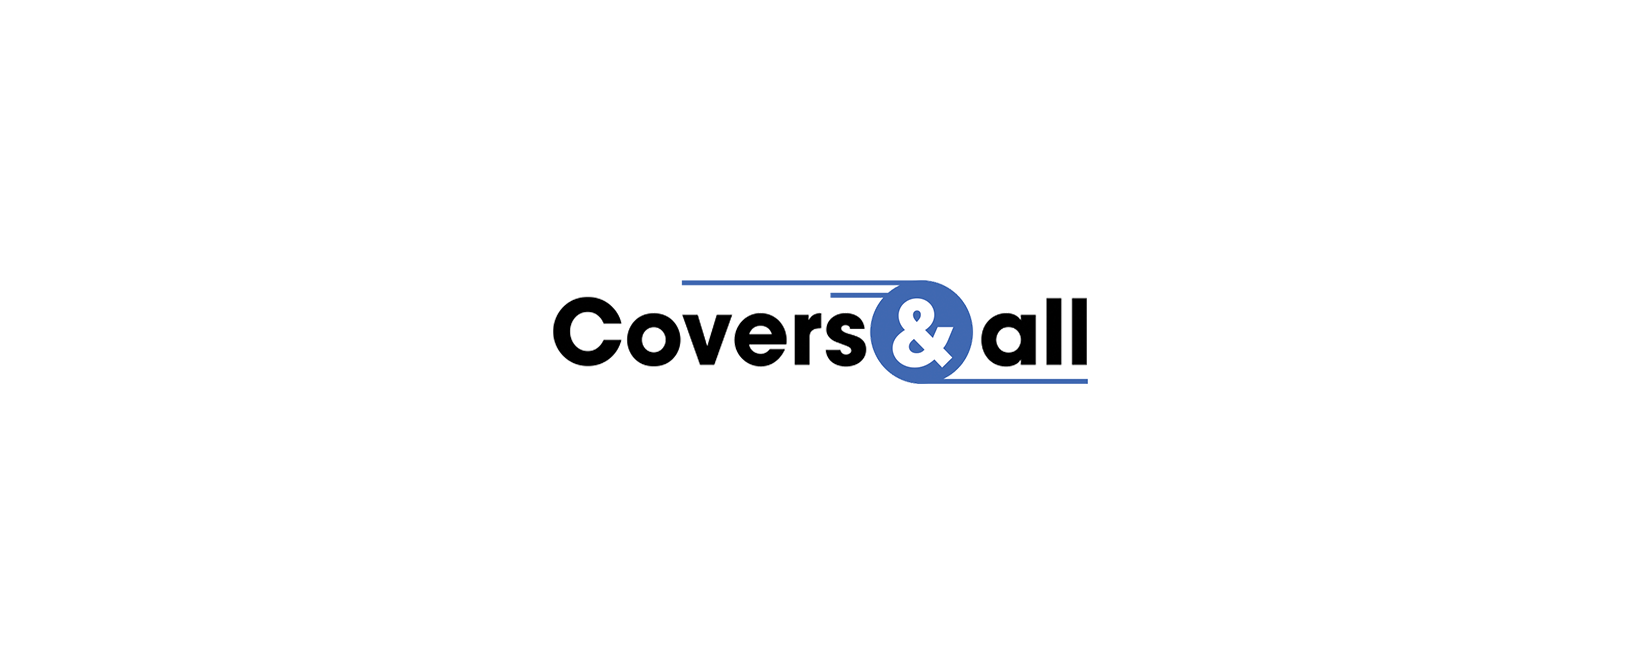 Covers And All Coupon Code 2021